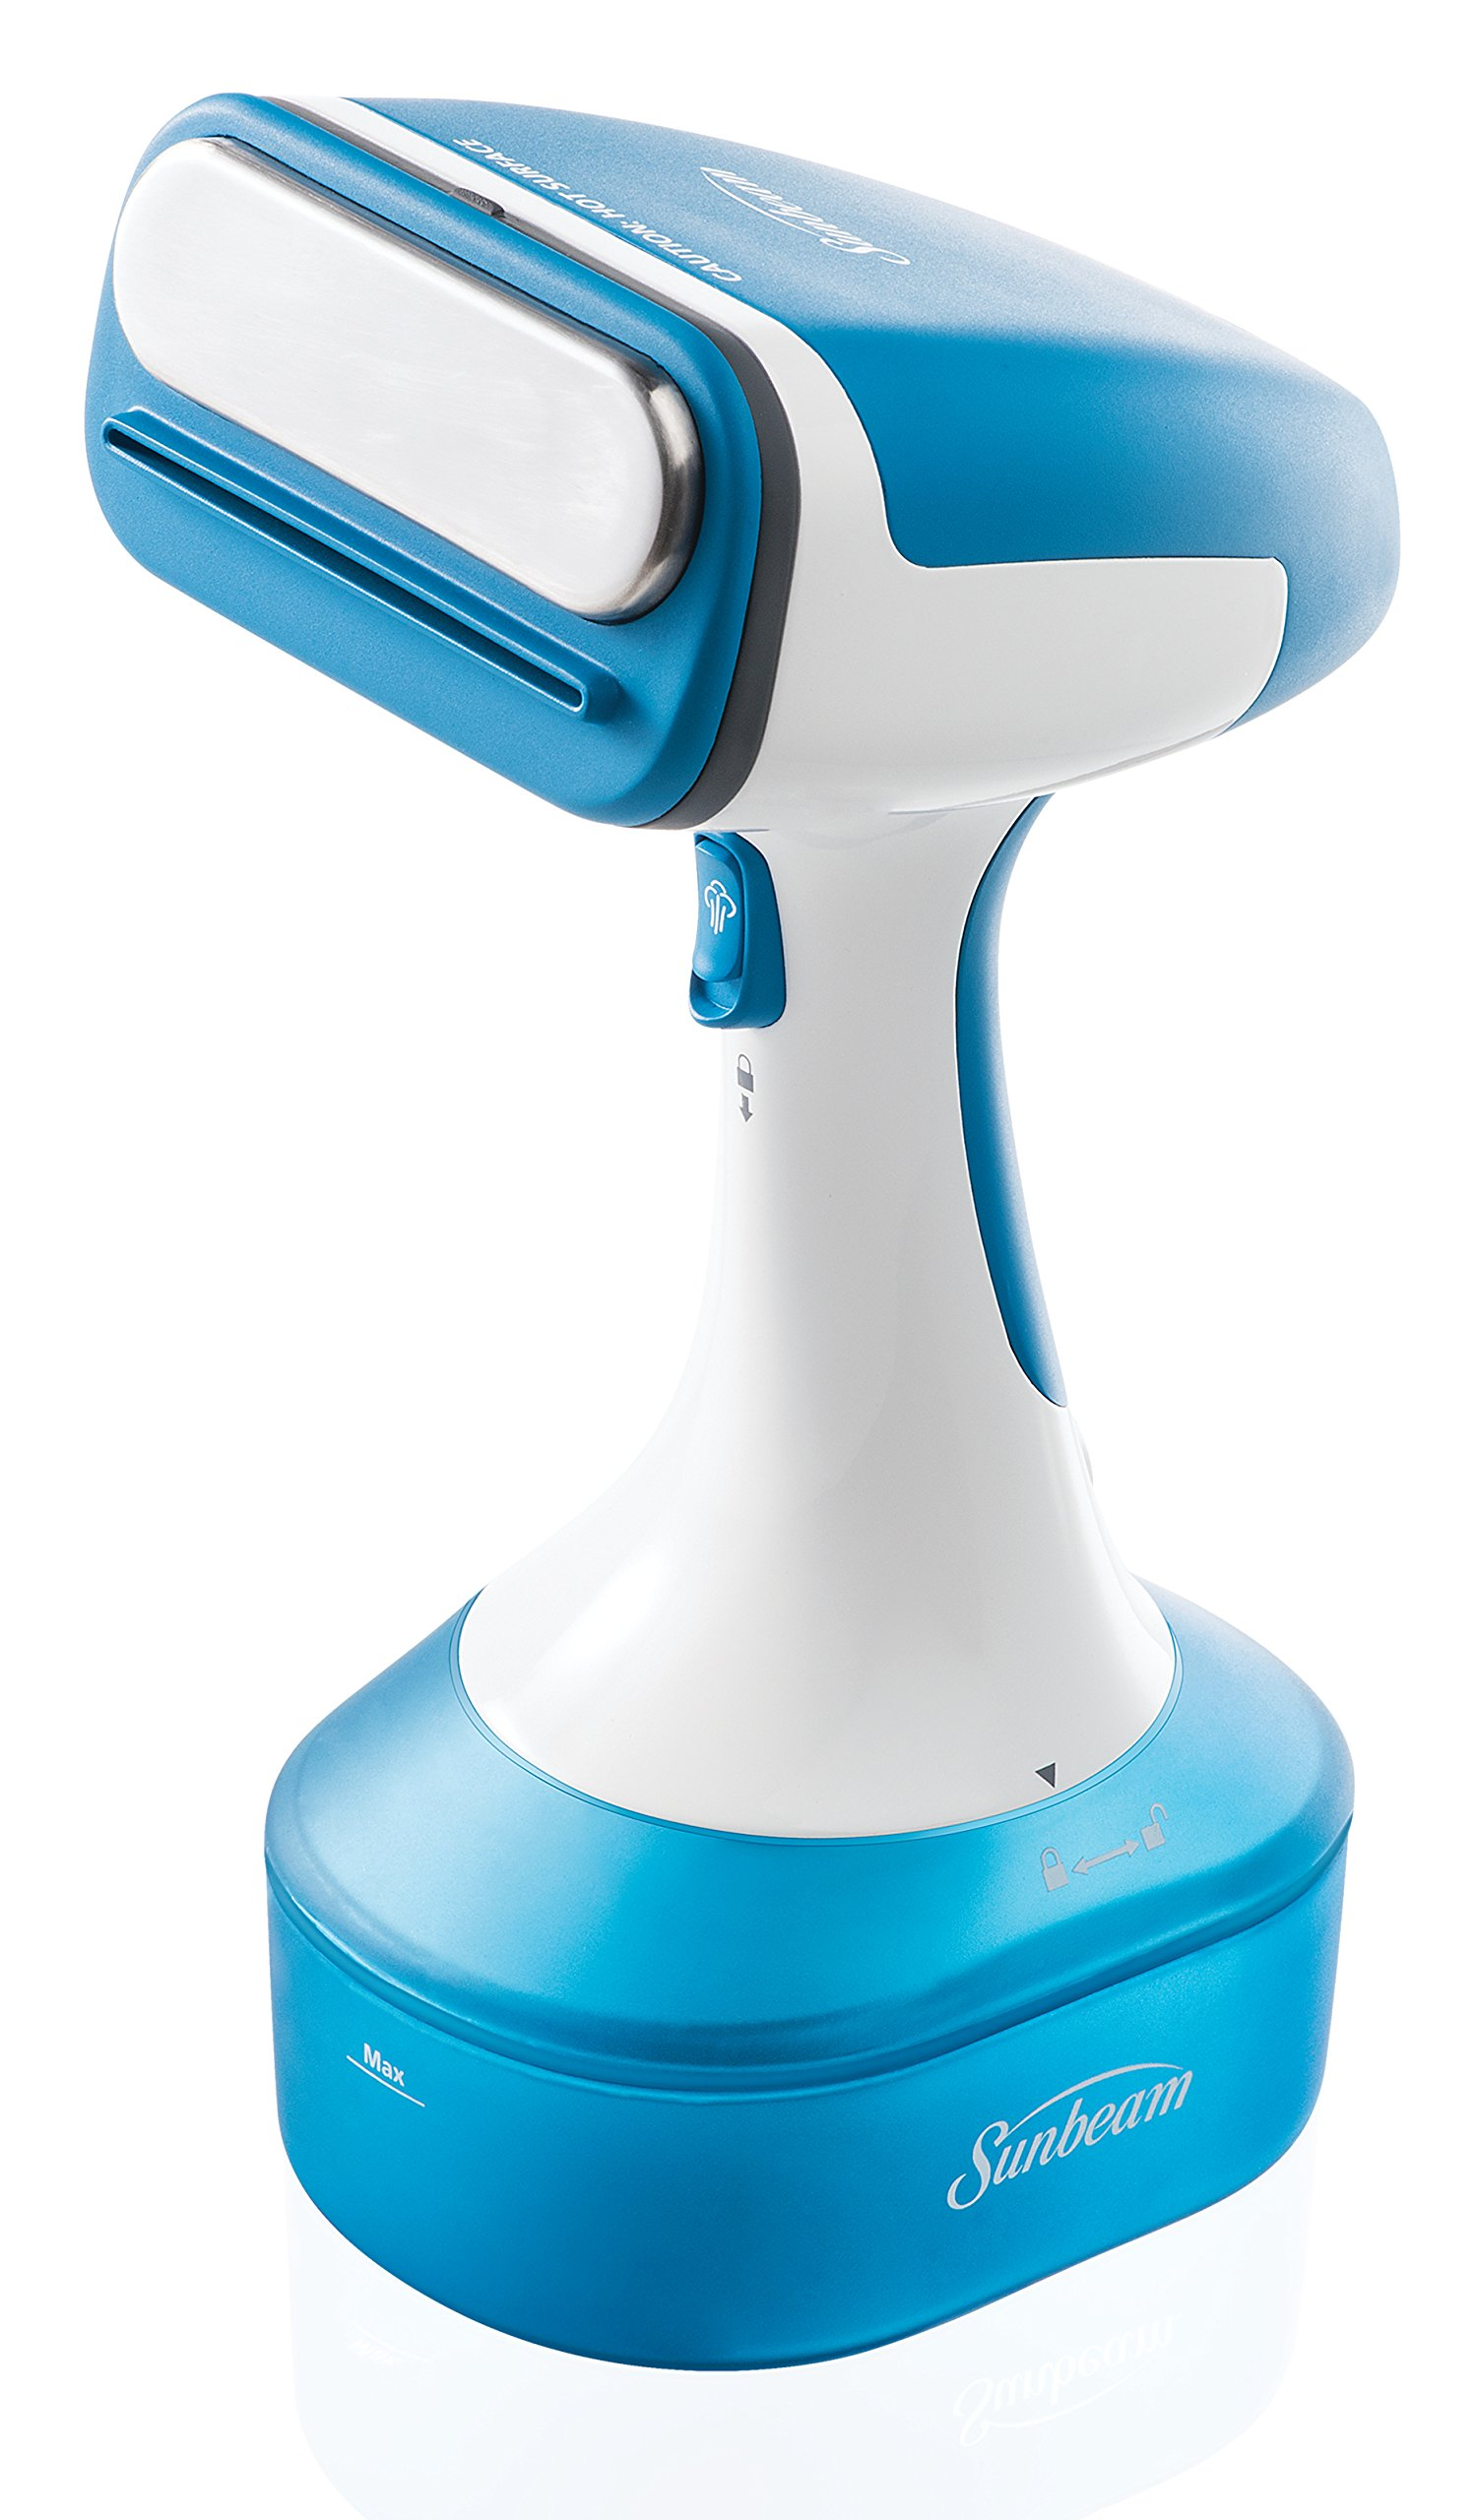 Sunbeam Handheld Garment Travel Steam Press for Clothes, Bedding, Fabric, Odor removing, Dust mites, Bed bugs by Sunbeam